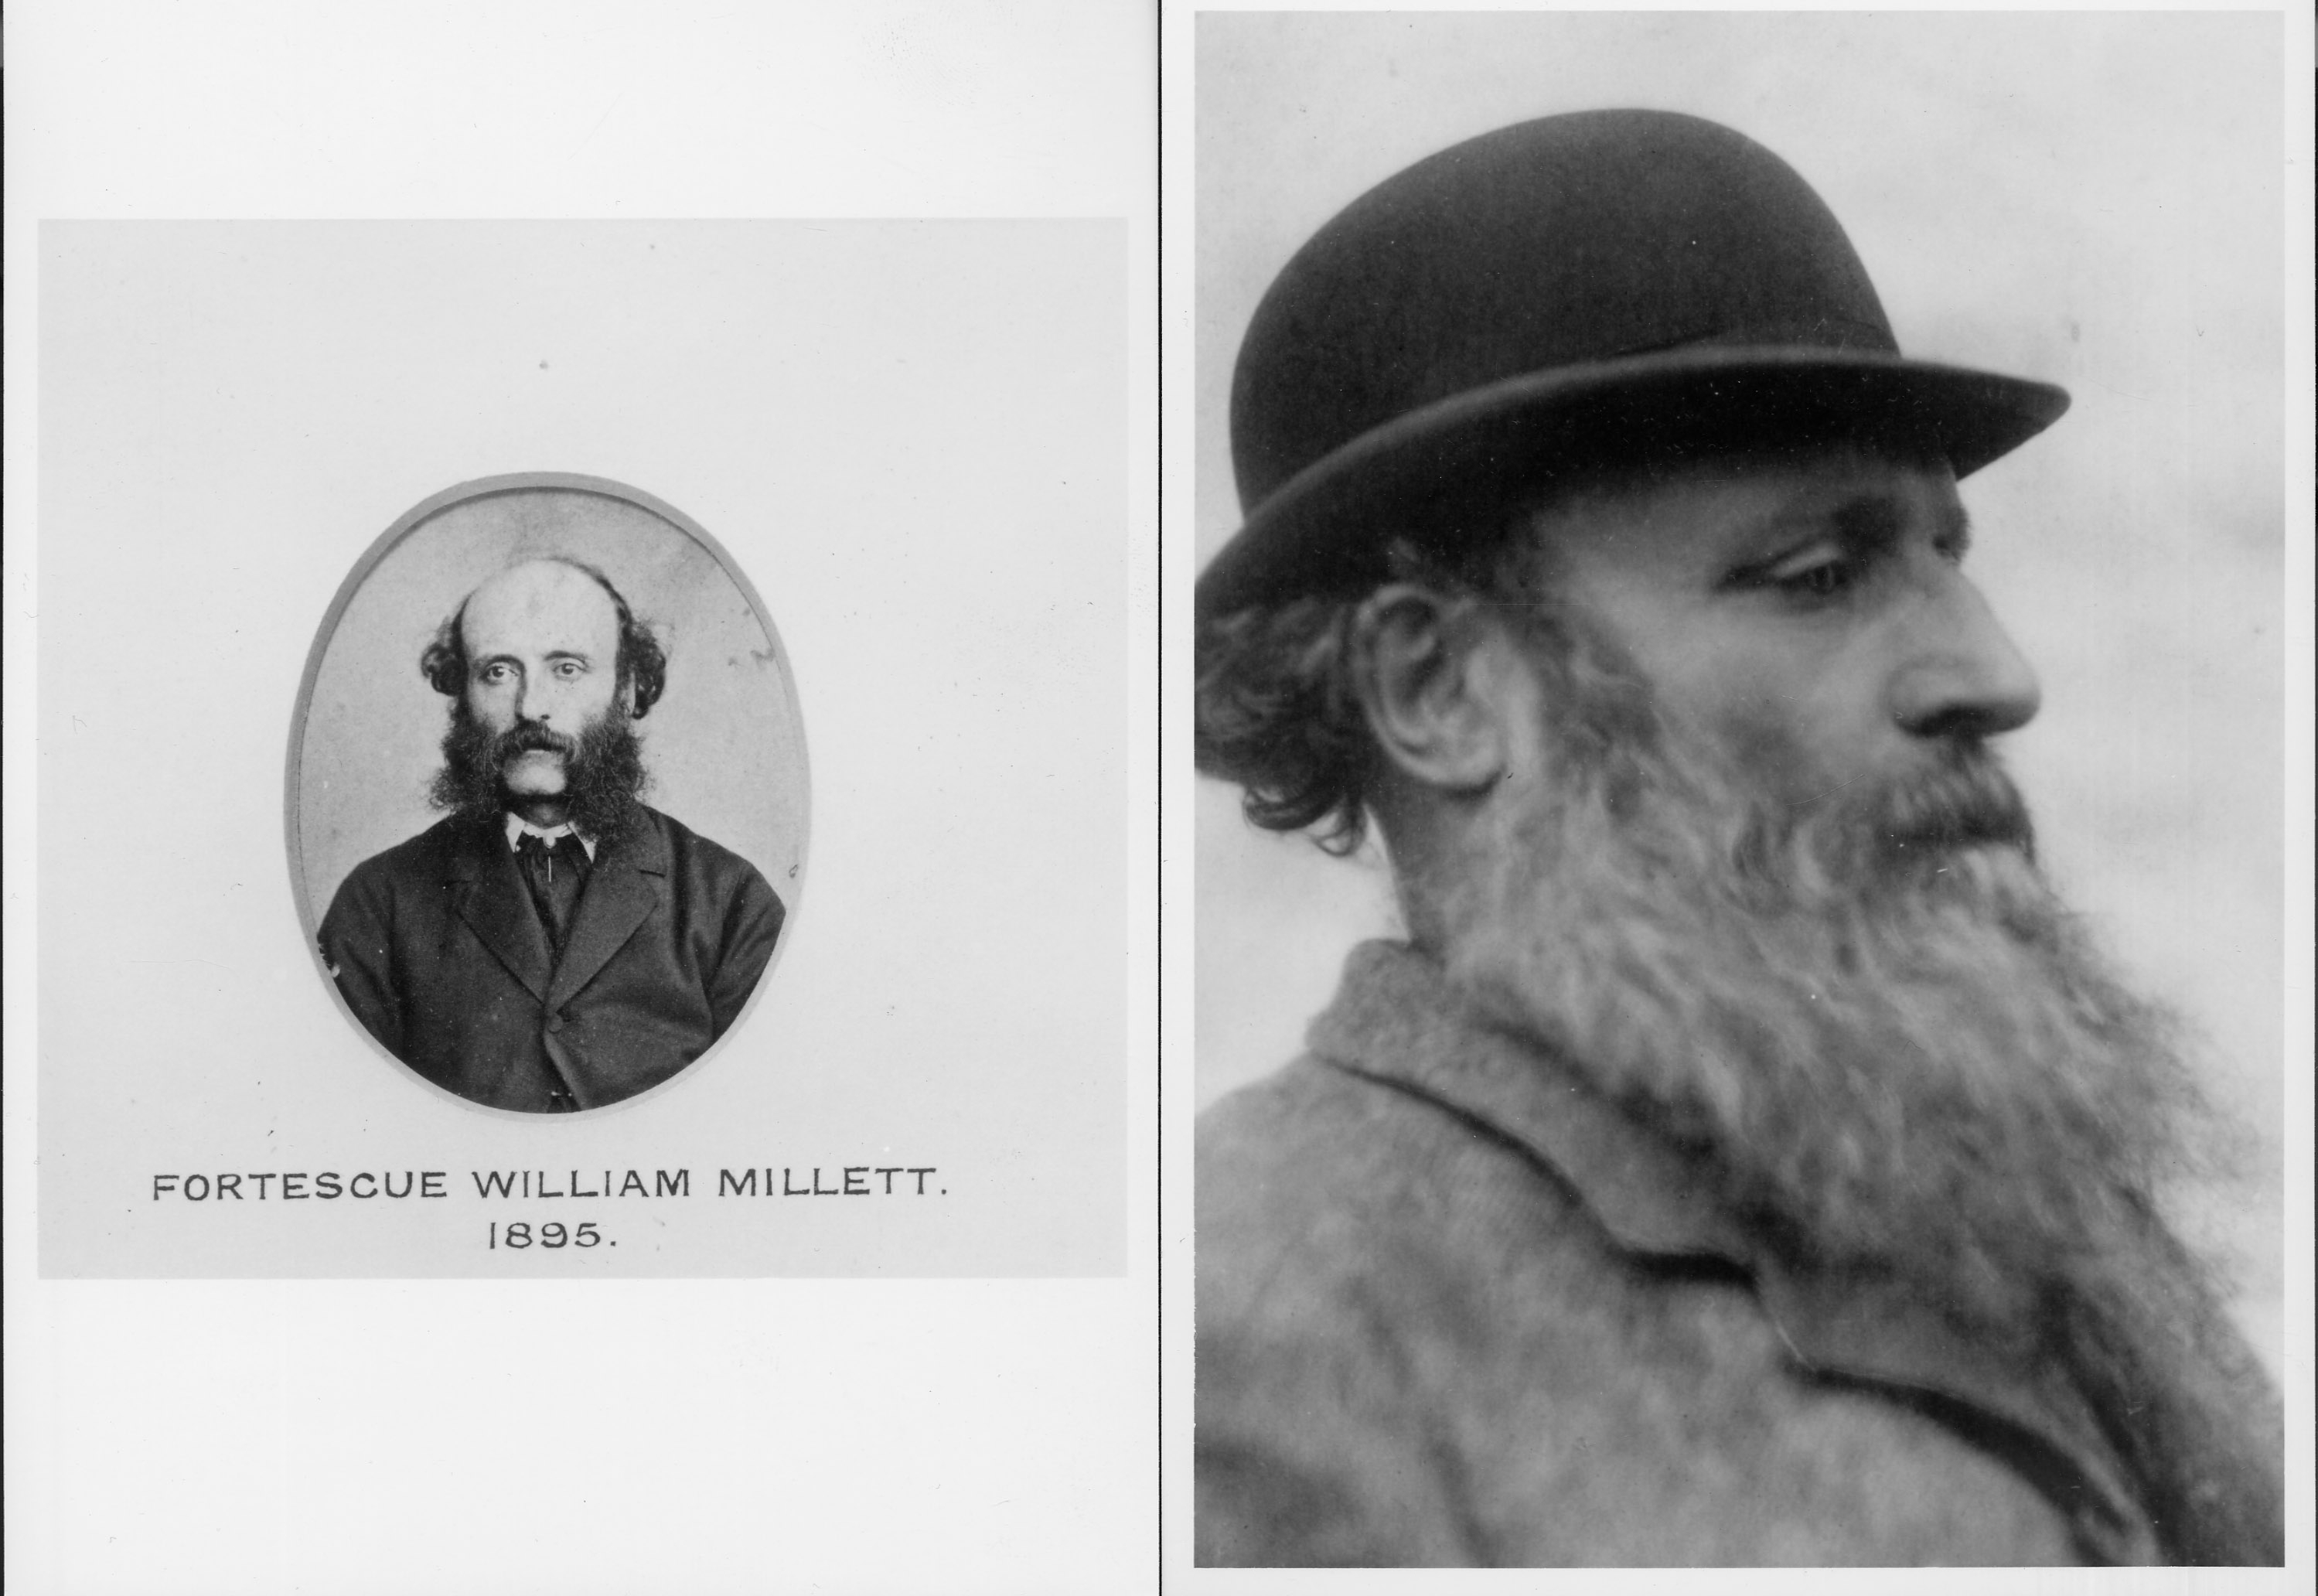 fortescue_william_millett_2.jpg